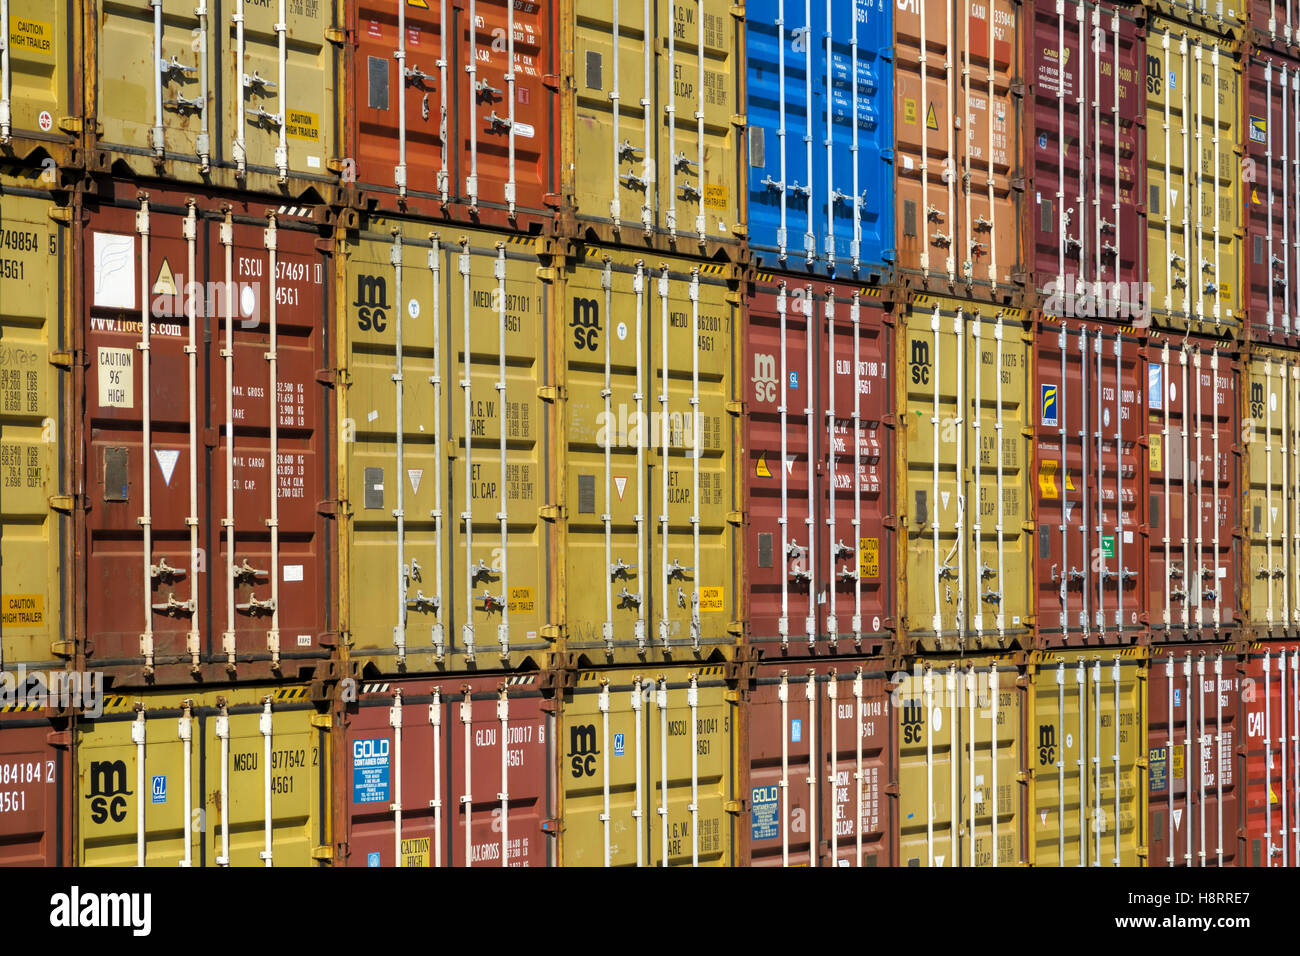 Stacks of shipping containers in Leixões port, Matosinhos, Portugal, Europe - Stock Image